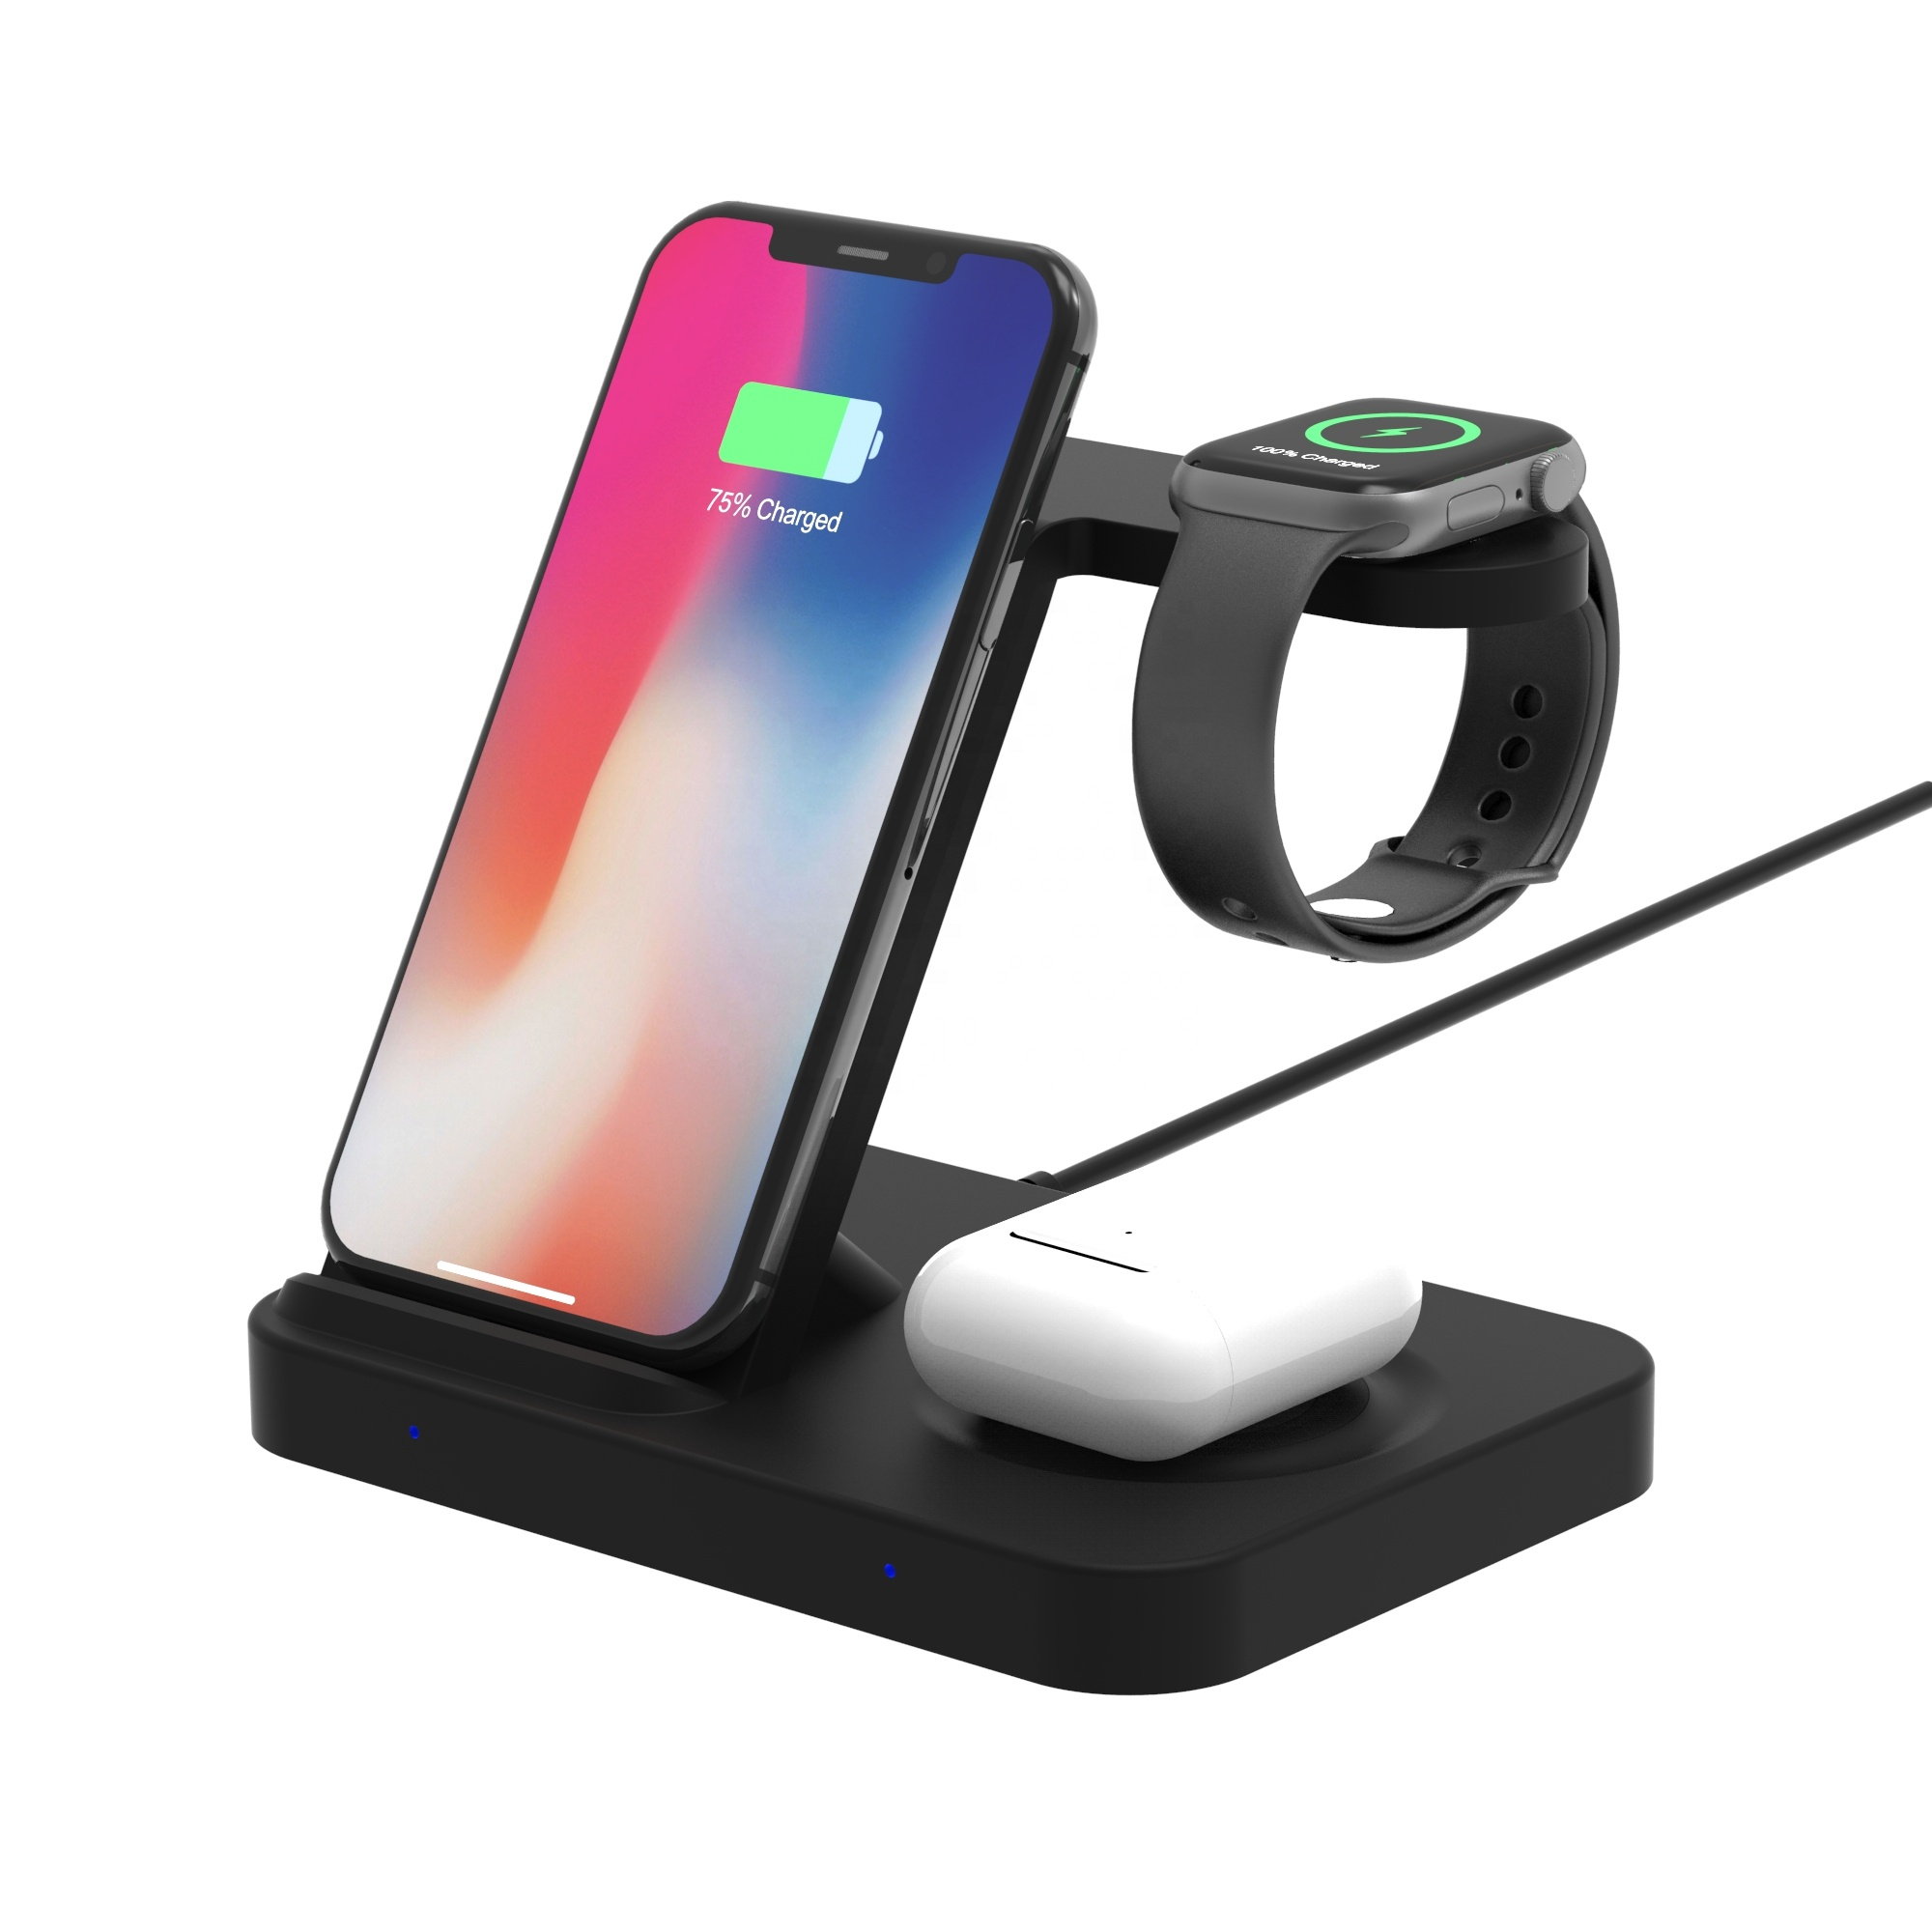 Fast Wireless Charging Station for iPhone 11 Pro/XS Max and AirPodss Pro/2 and iWatchs Series 5/4/3/2/1 and Galaxy Watchs/Buds